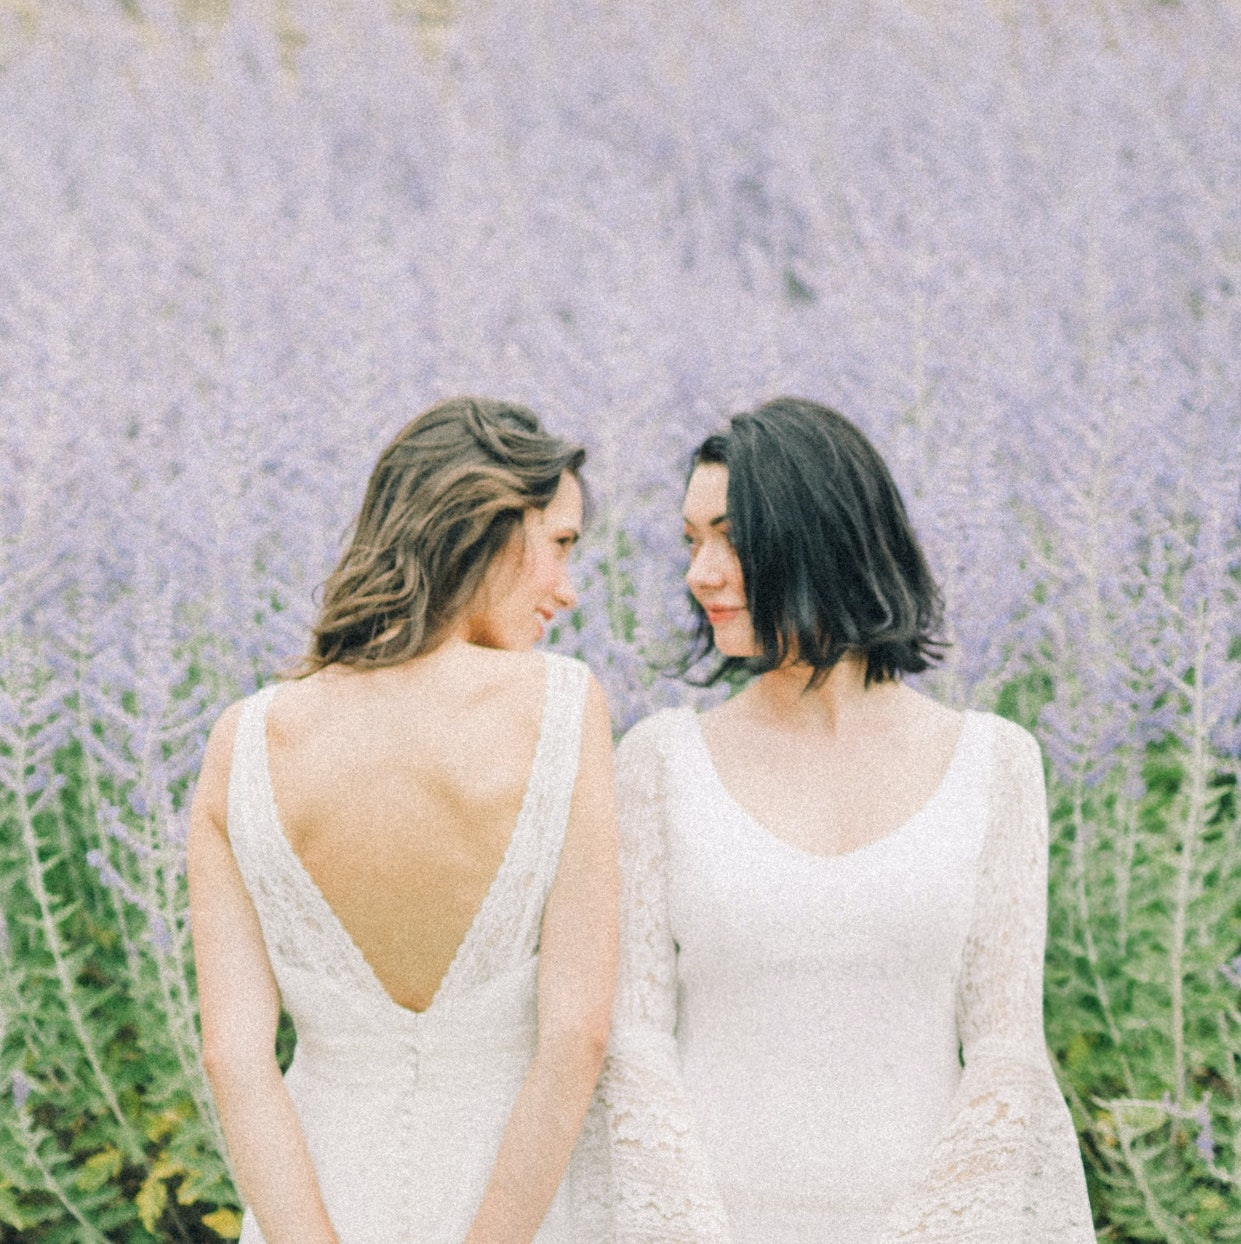 Two women in front of a field of lavender.